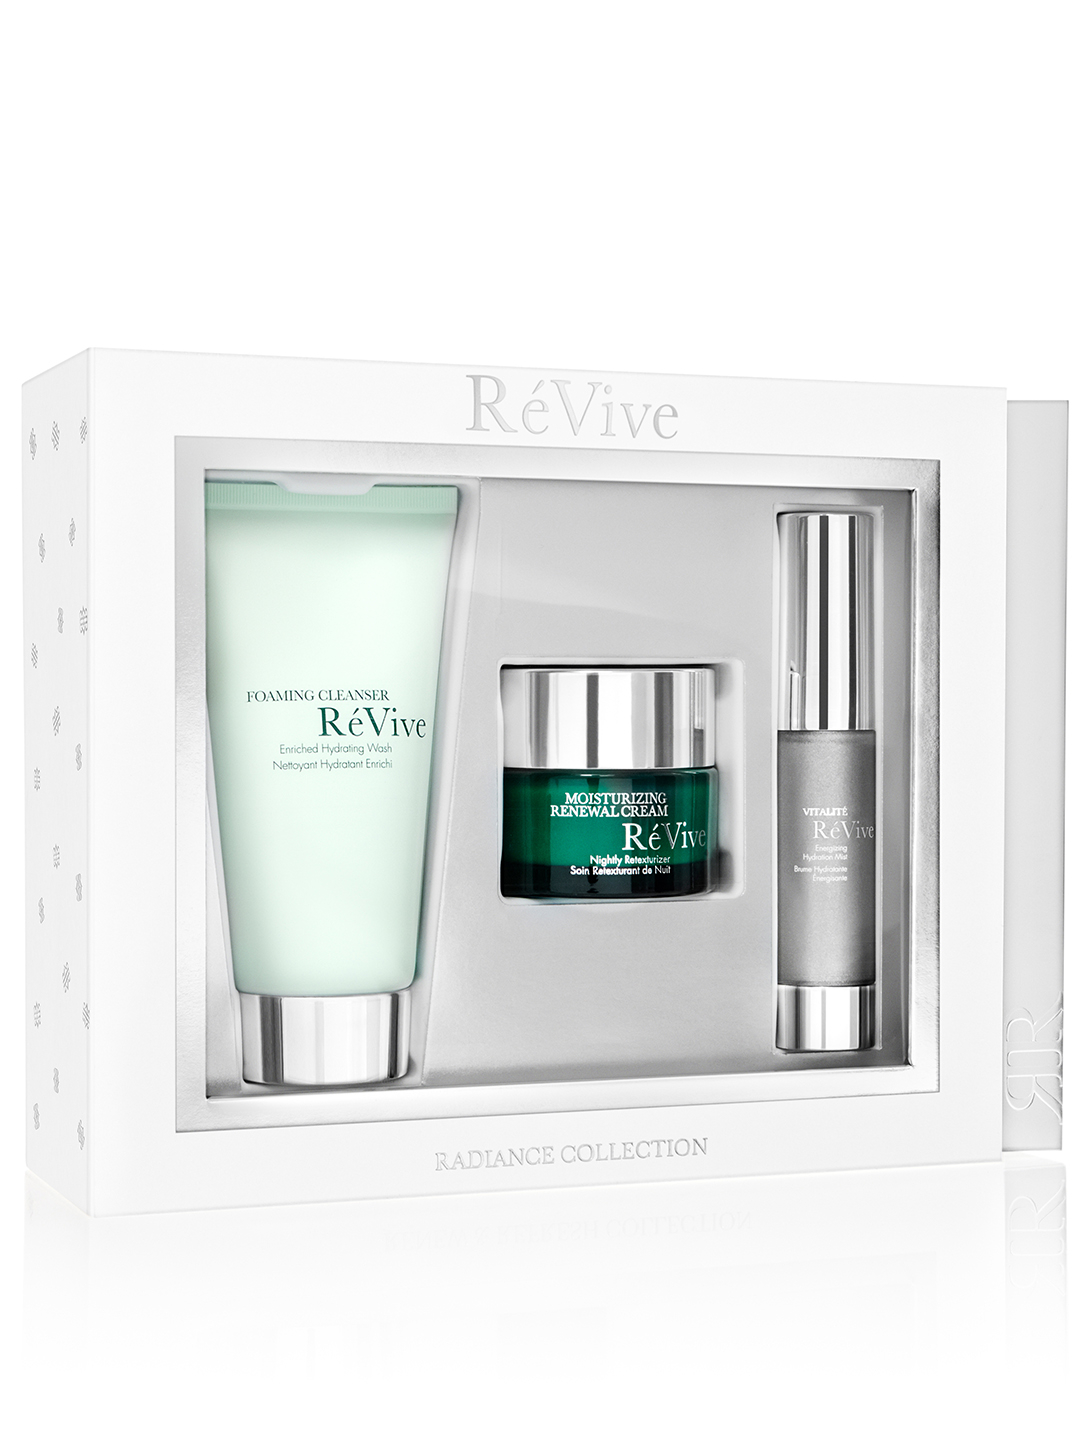 RÉVIVE Collection Radiance Beauté